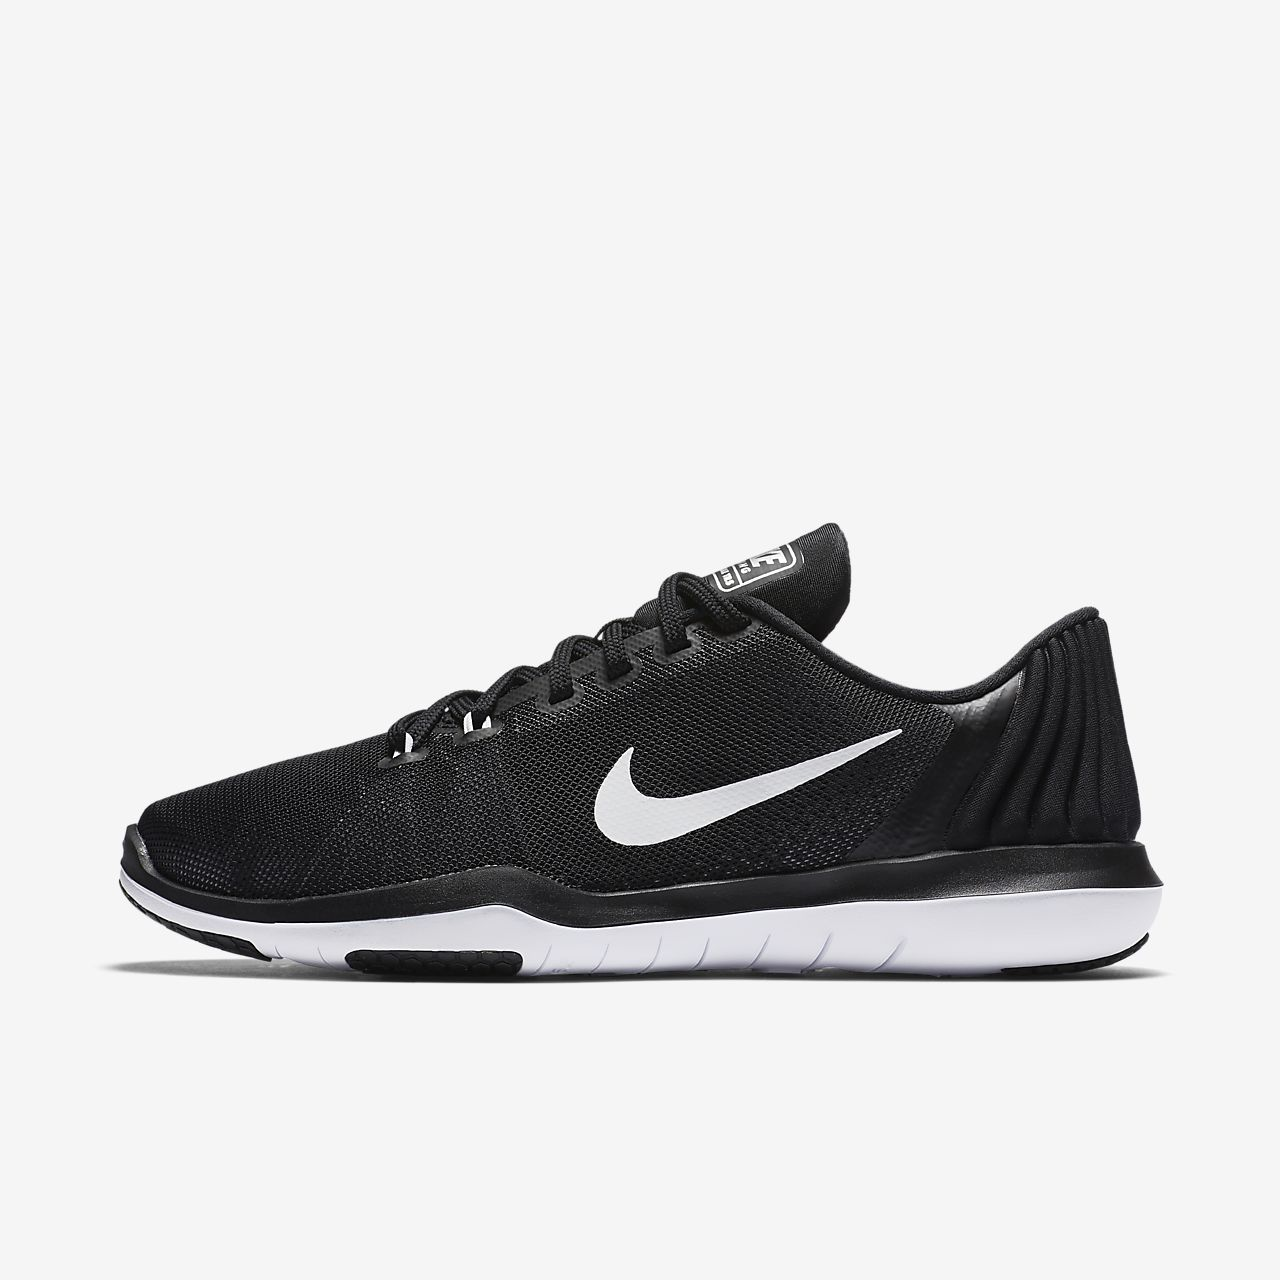 ... Nike Flex Supreme TR 5 Women's Training Shoe